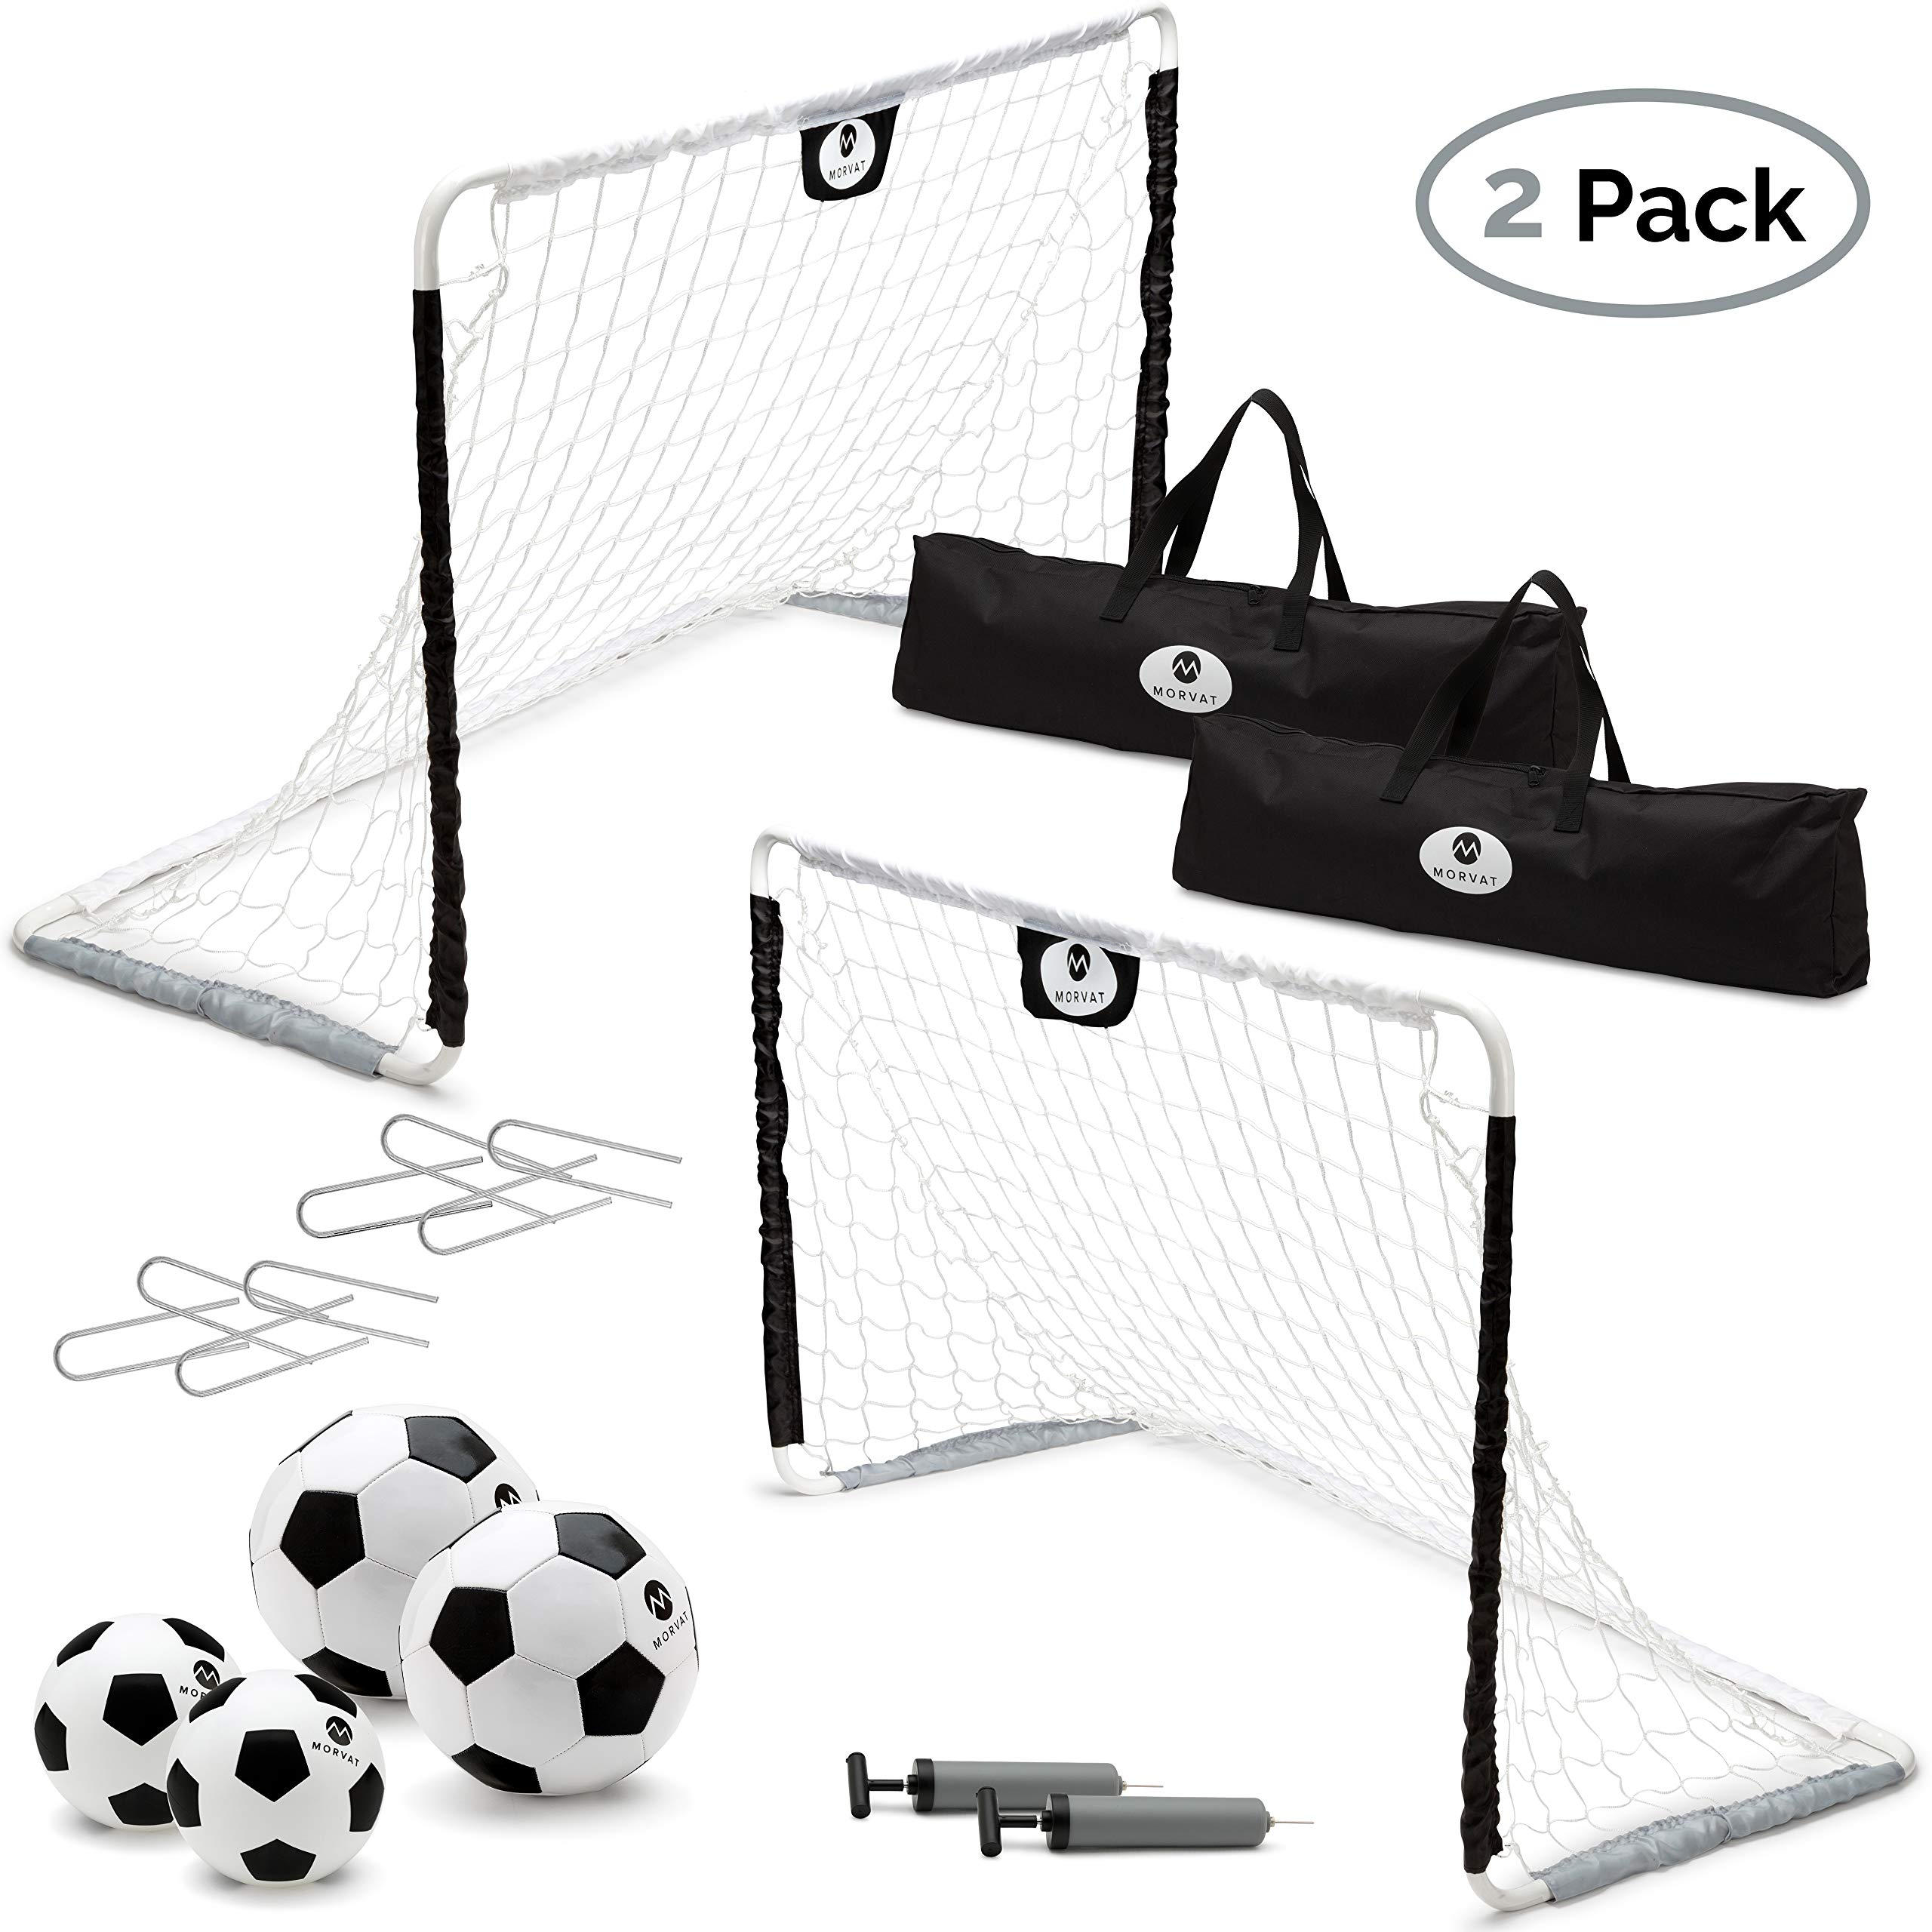 Morvat Soccer Goal Set for Backyard, Outdoor Games Soccer Net, Soccer Goals for Kids, Soccer Accessories, Pop Up Soccer Goals, Set of 2, Includes 2 Goal Nets, Ball and More, Black and White by Morvat